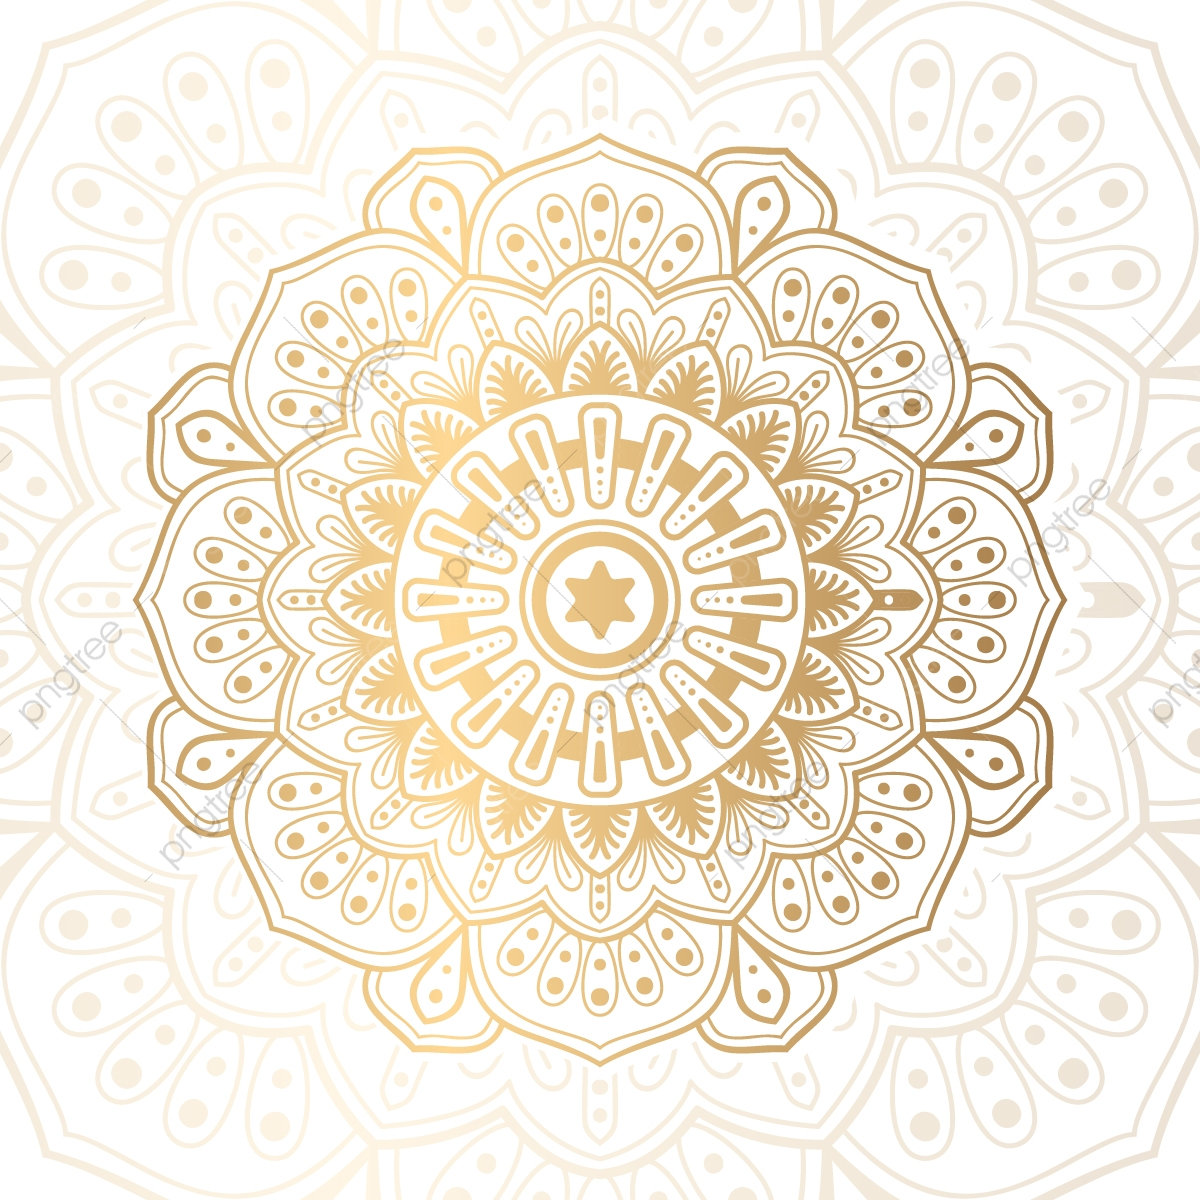 Design Your Own Home Software Free Download Luxury Mandala Design, Luxury, Floral, Mandala Png And